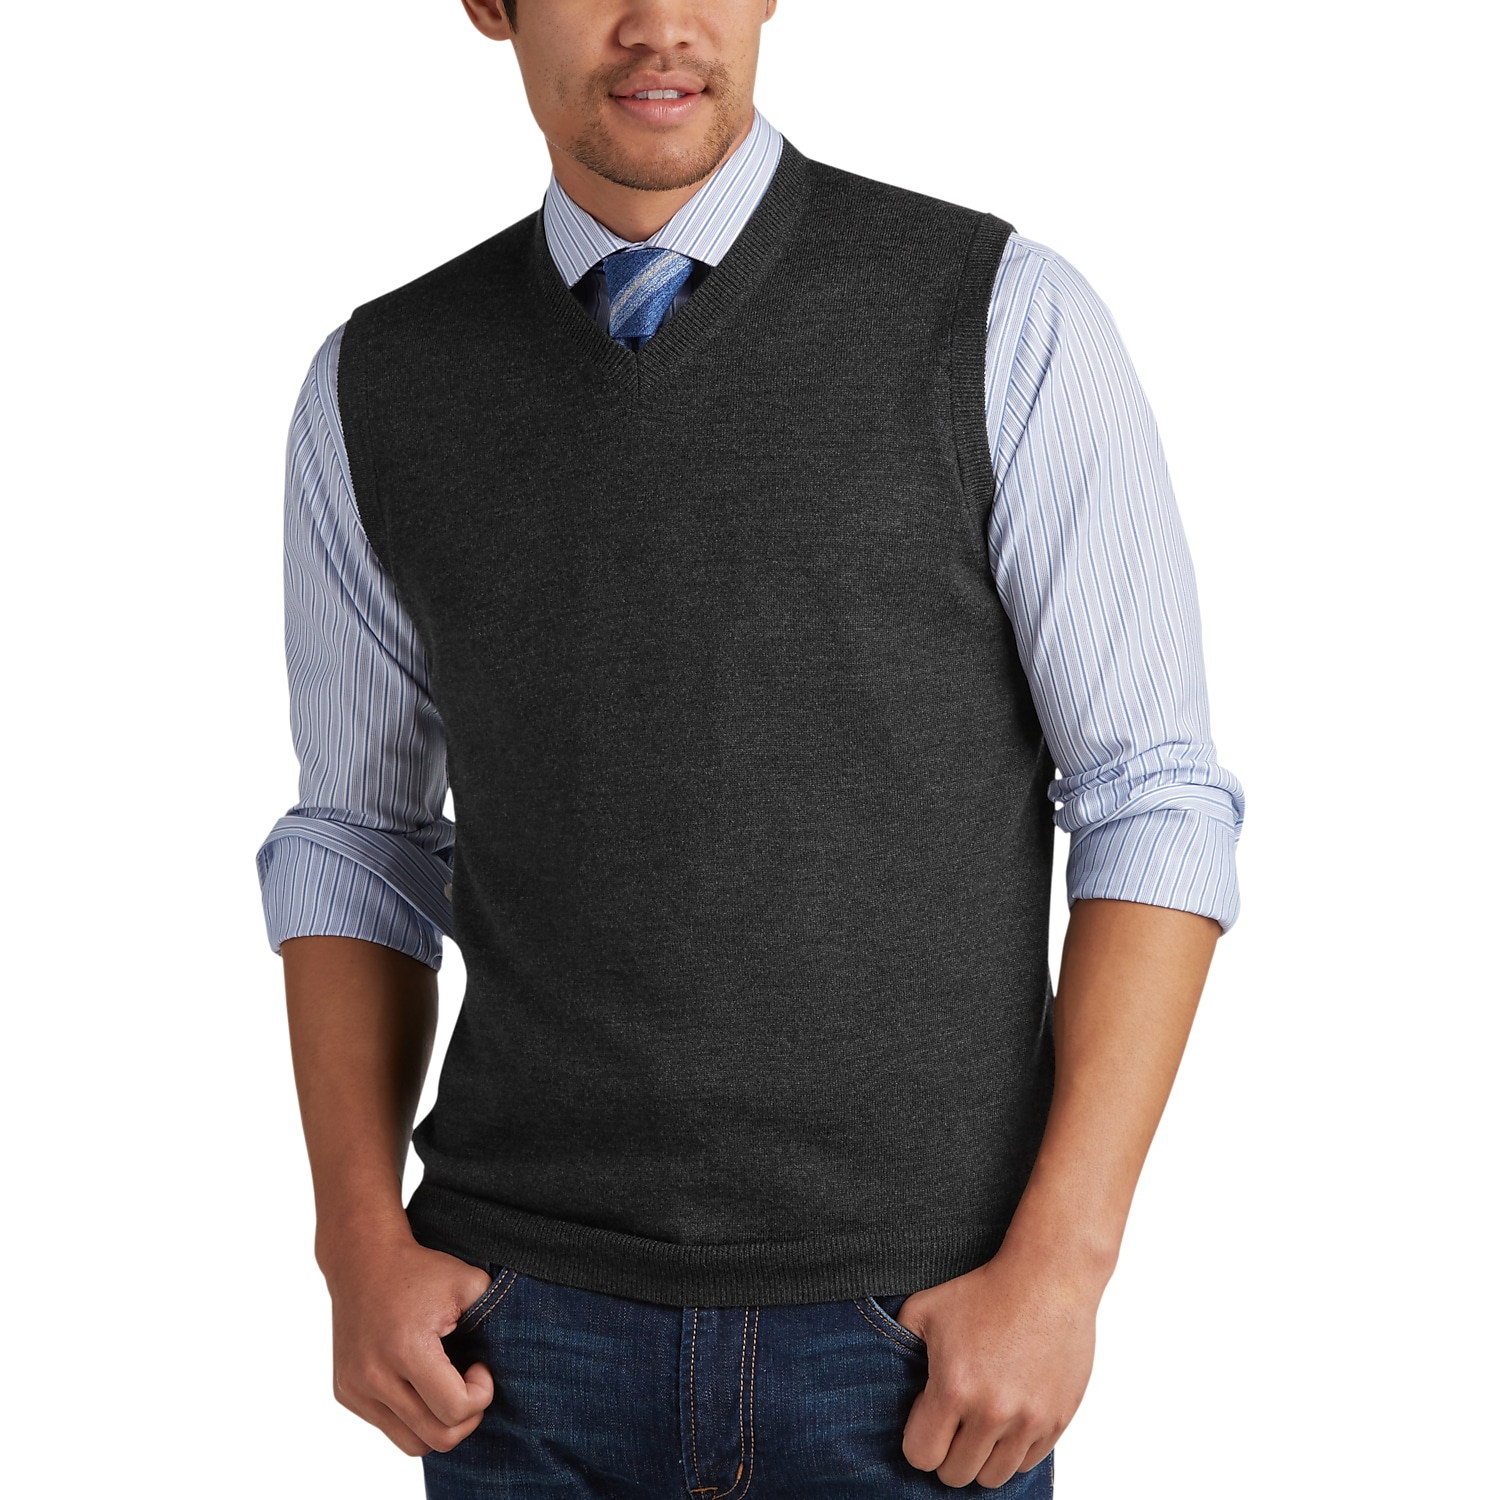 Joseph Abboud Charcoal V-Neck Modern Fit Sweater Vest - Men's ...